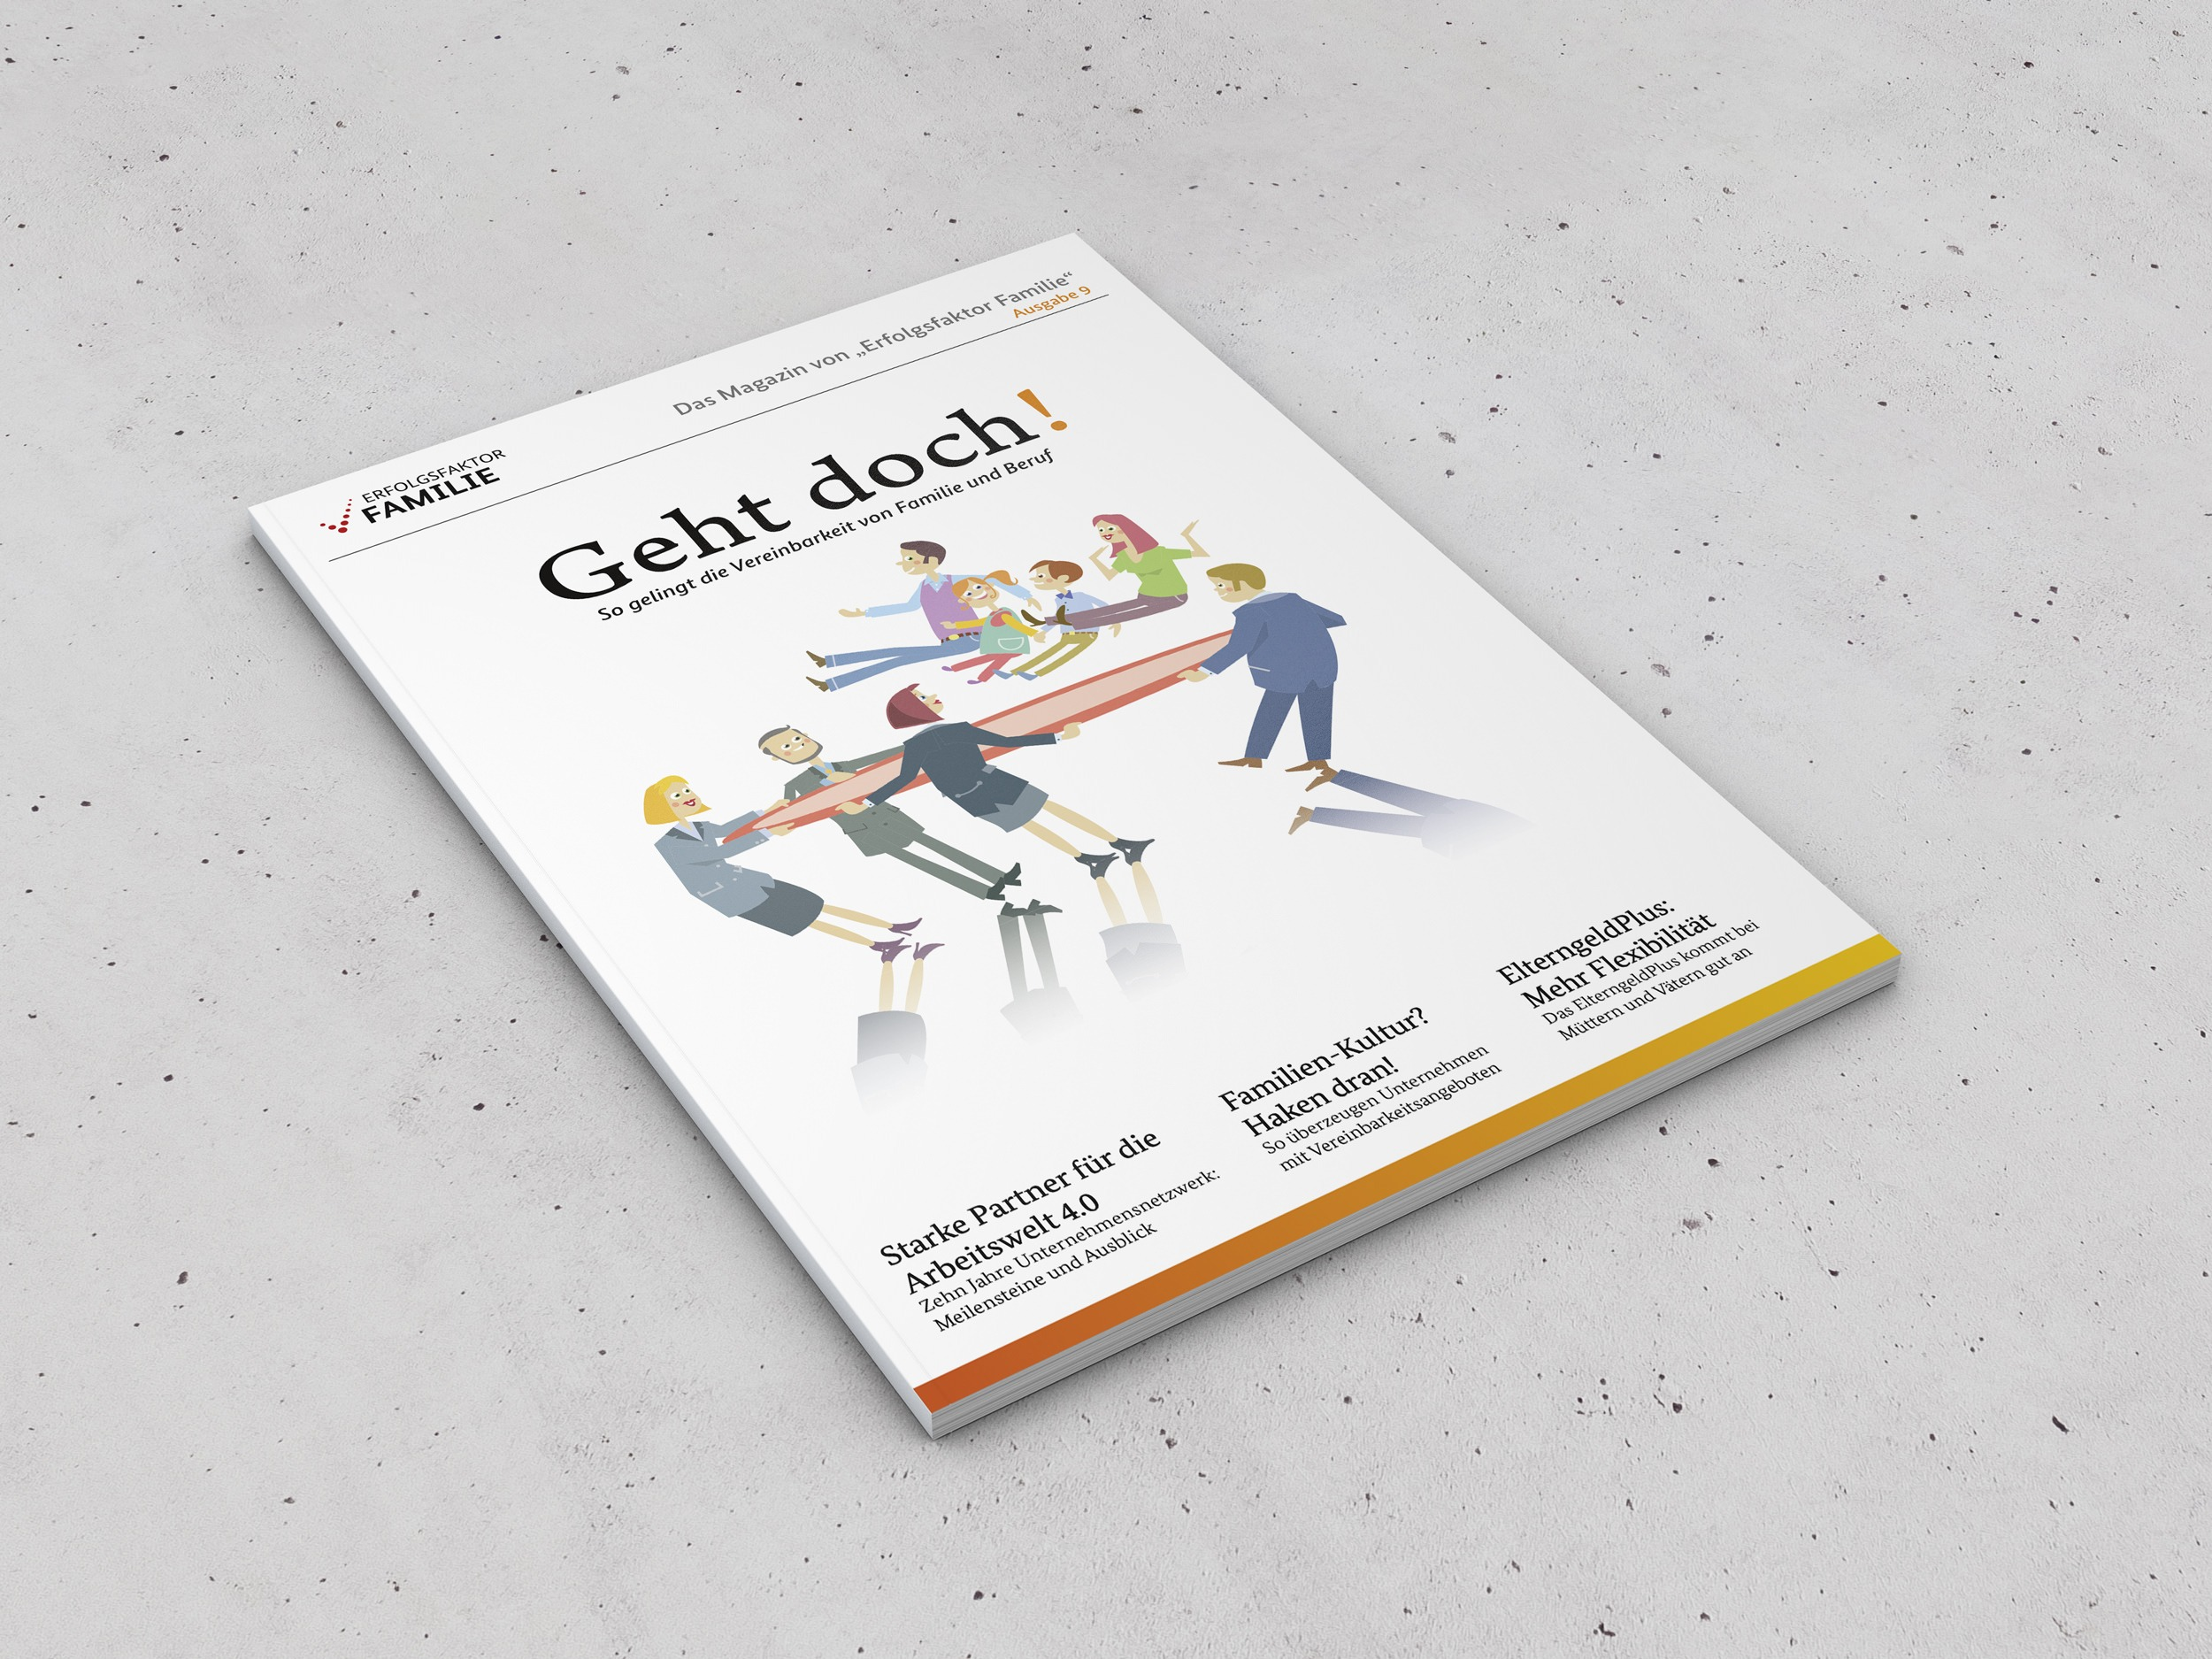 "BMFSFJ – Erfolgsfaktor Familie – Magazin ""Geht doch!"" 